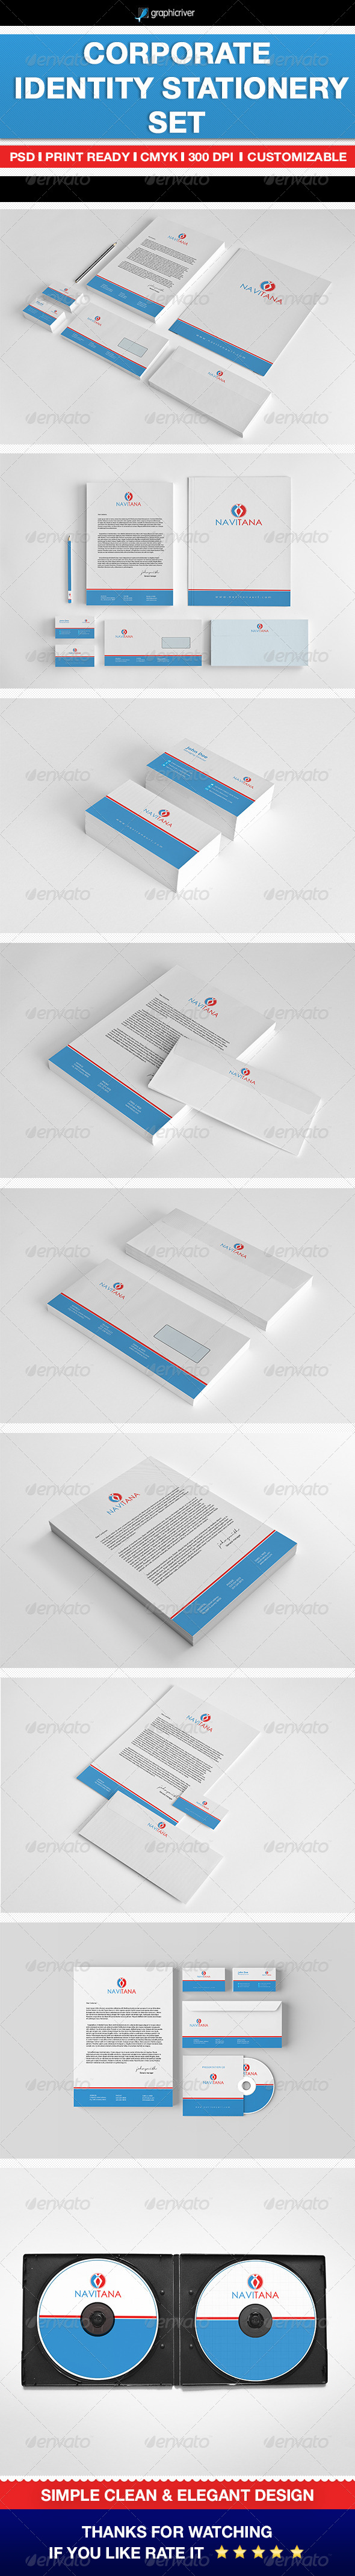 GraphicRiver Corporate Identity Stationery Set 6902259